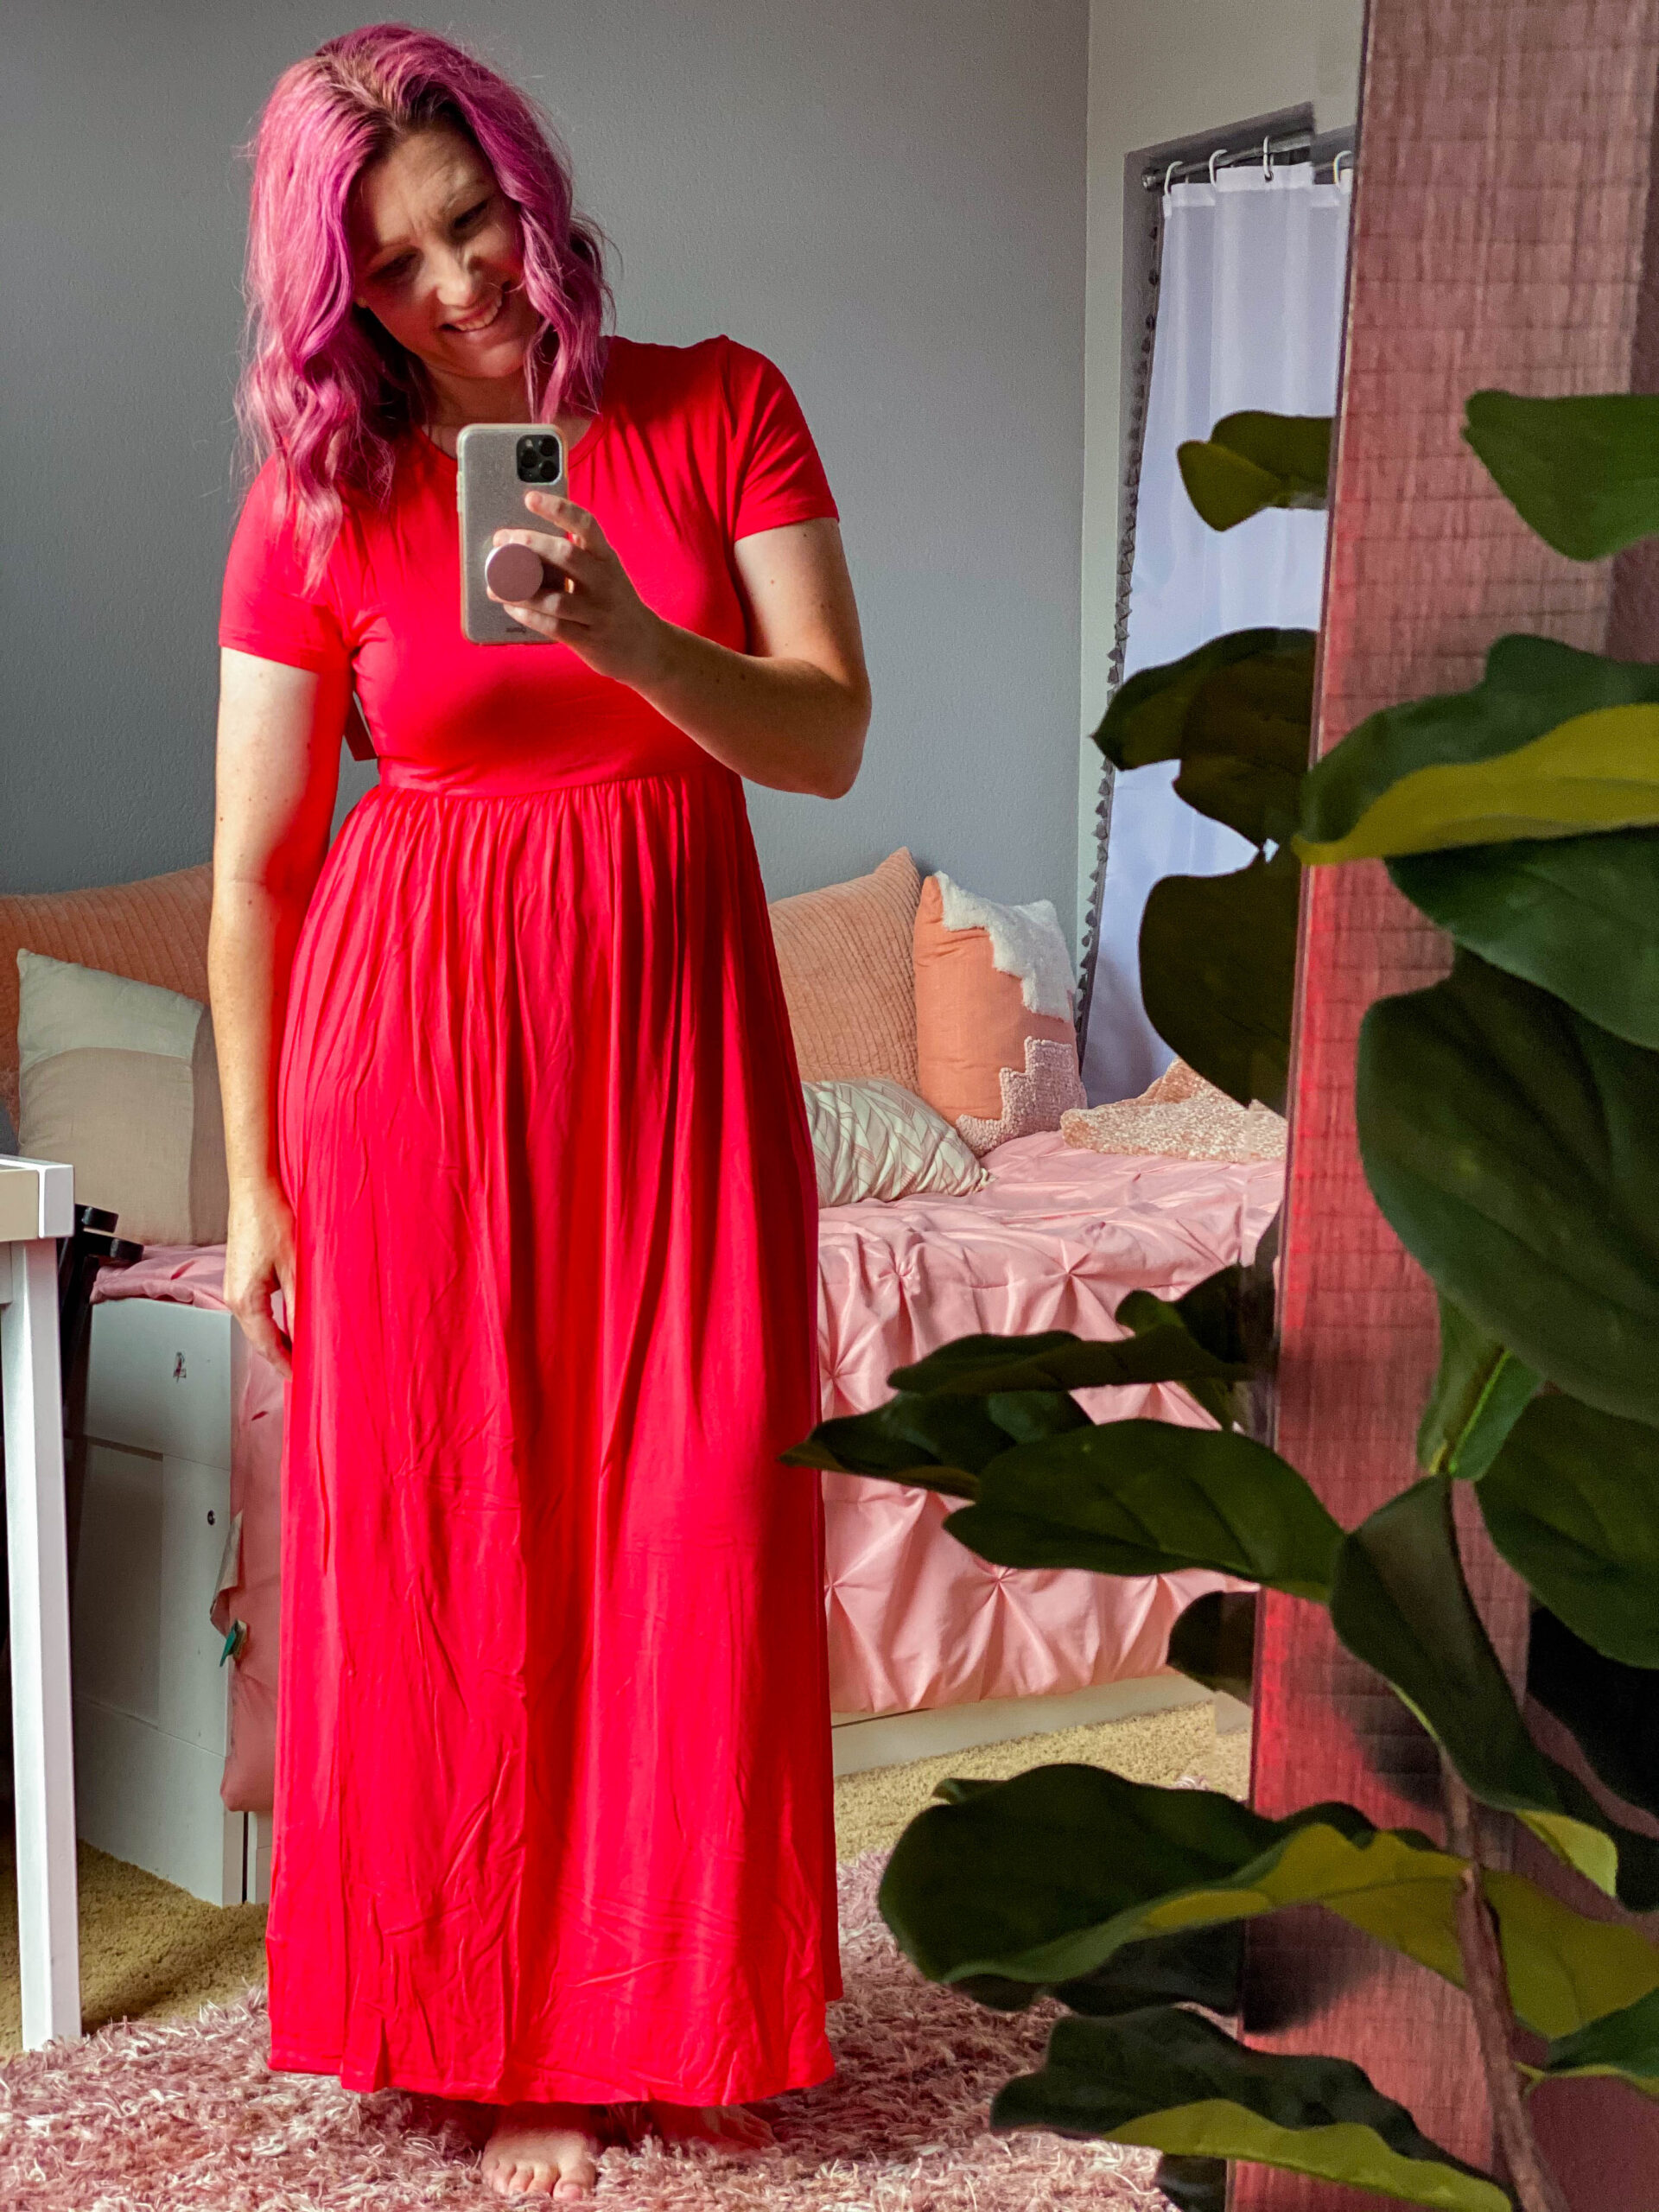 Looking for cute sundresses? This red midi one is ADORABLE!